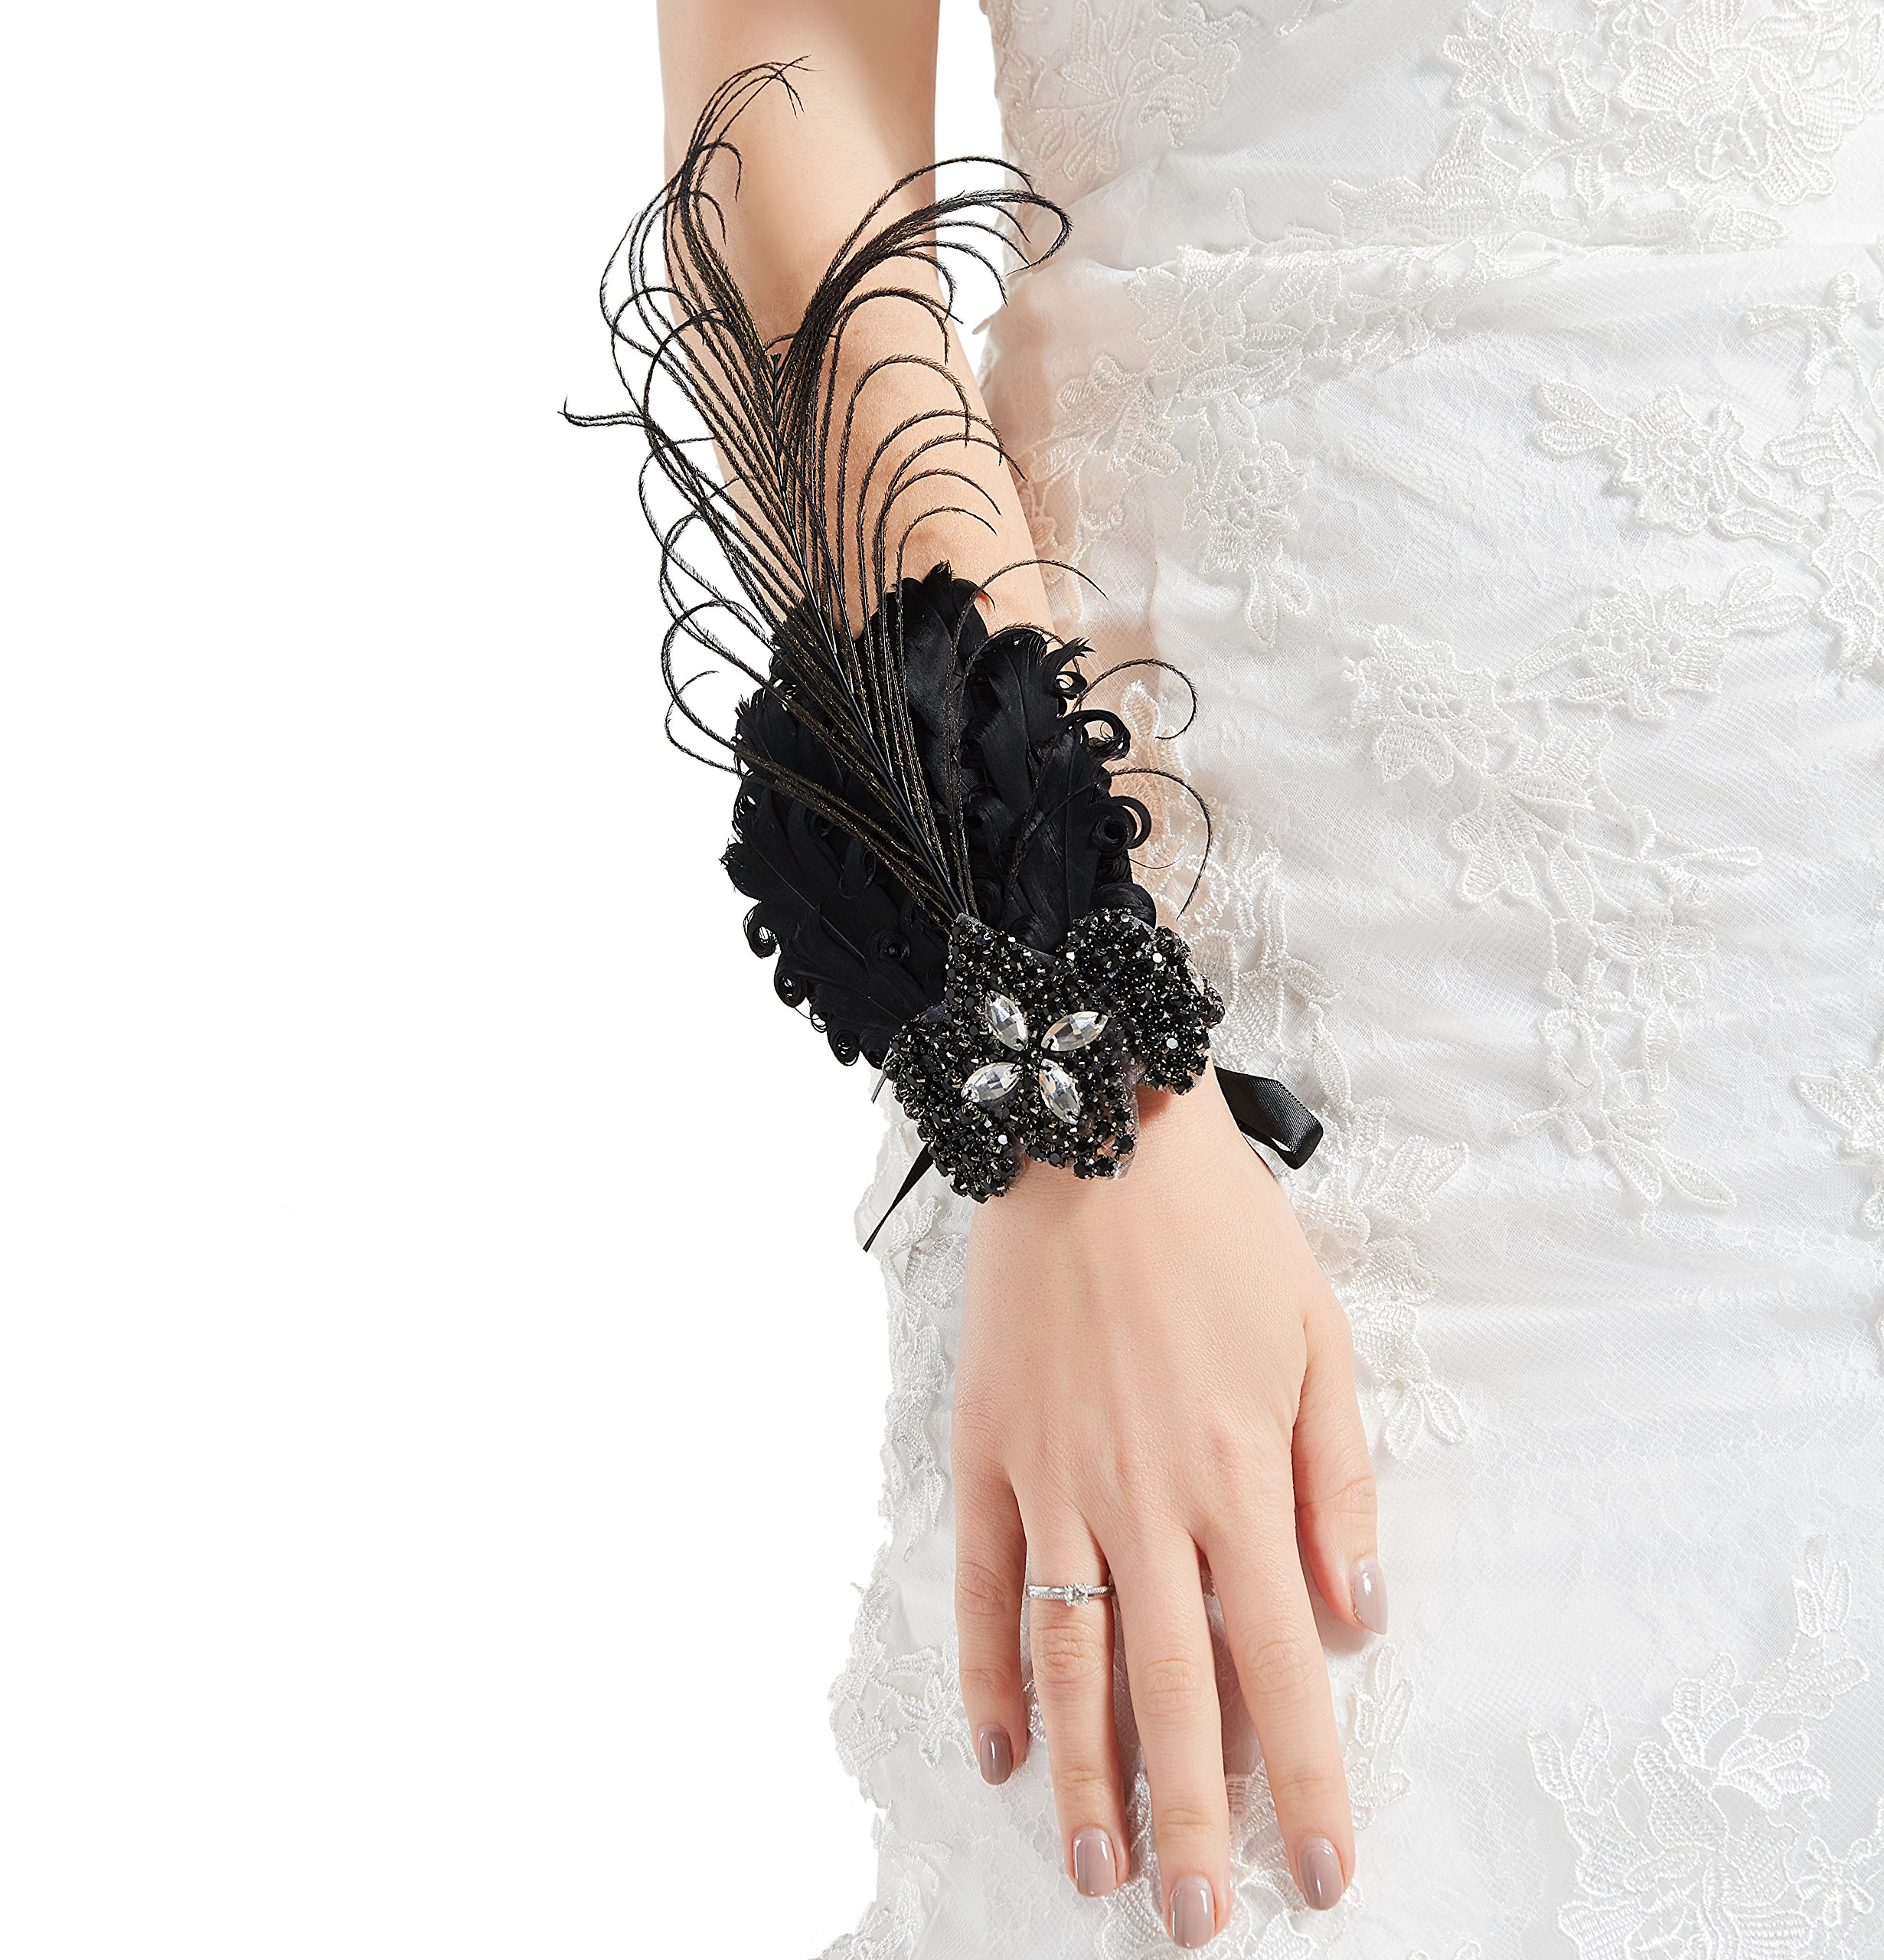 BABEYOND 1920s Wedding Wrist Corsage Gatsby Peacock Feather Bridal Wristband Corsage Roaring 20s Flapper Wedding Costume Accessories (Black